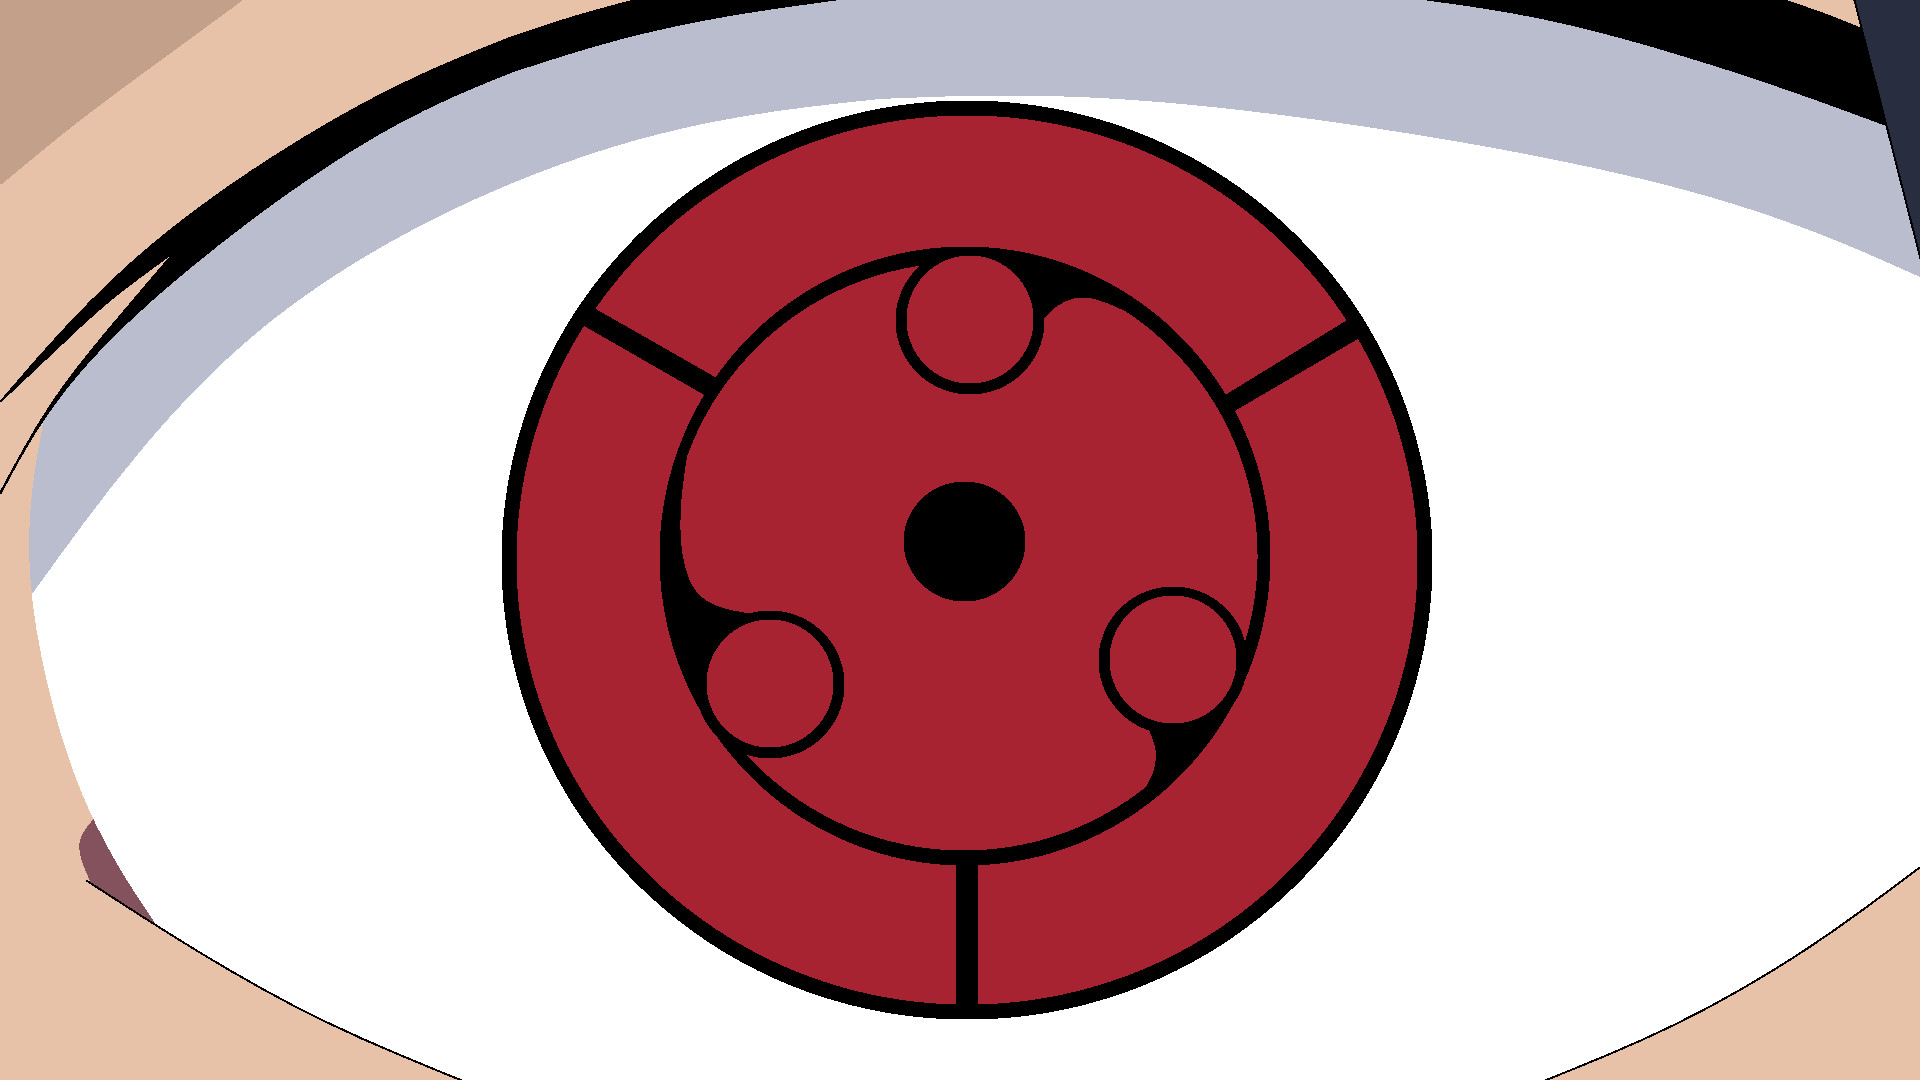 Res: 1920x1080, Madara Uchiha's Eternal Mangekyo Sharingan by UchihaClanAncestor Madara  Uchiha's Eternal Mangekyo Sharingan by UchihaClanAncestor